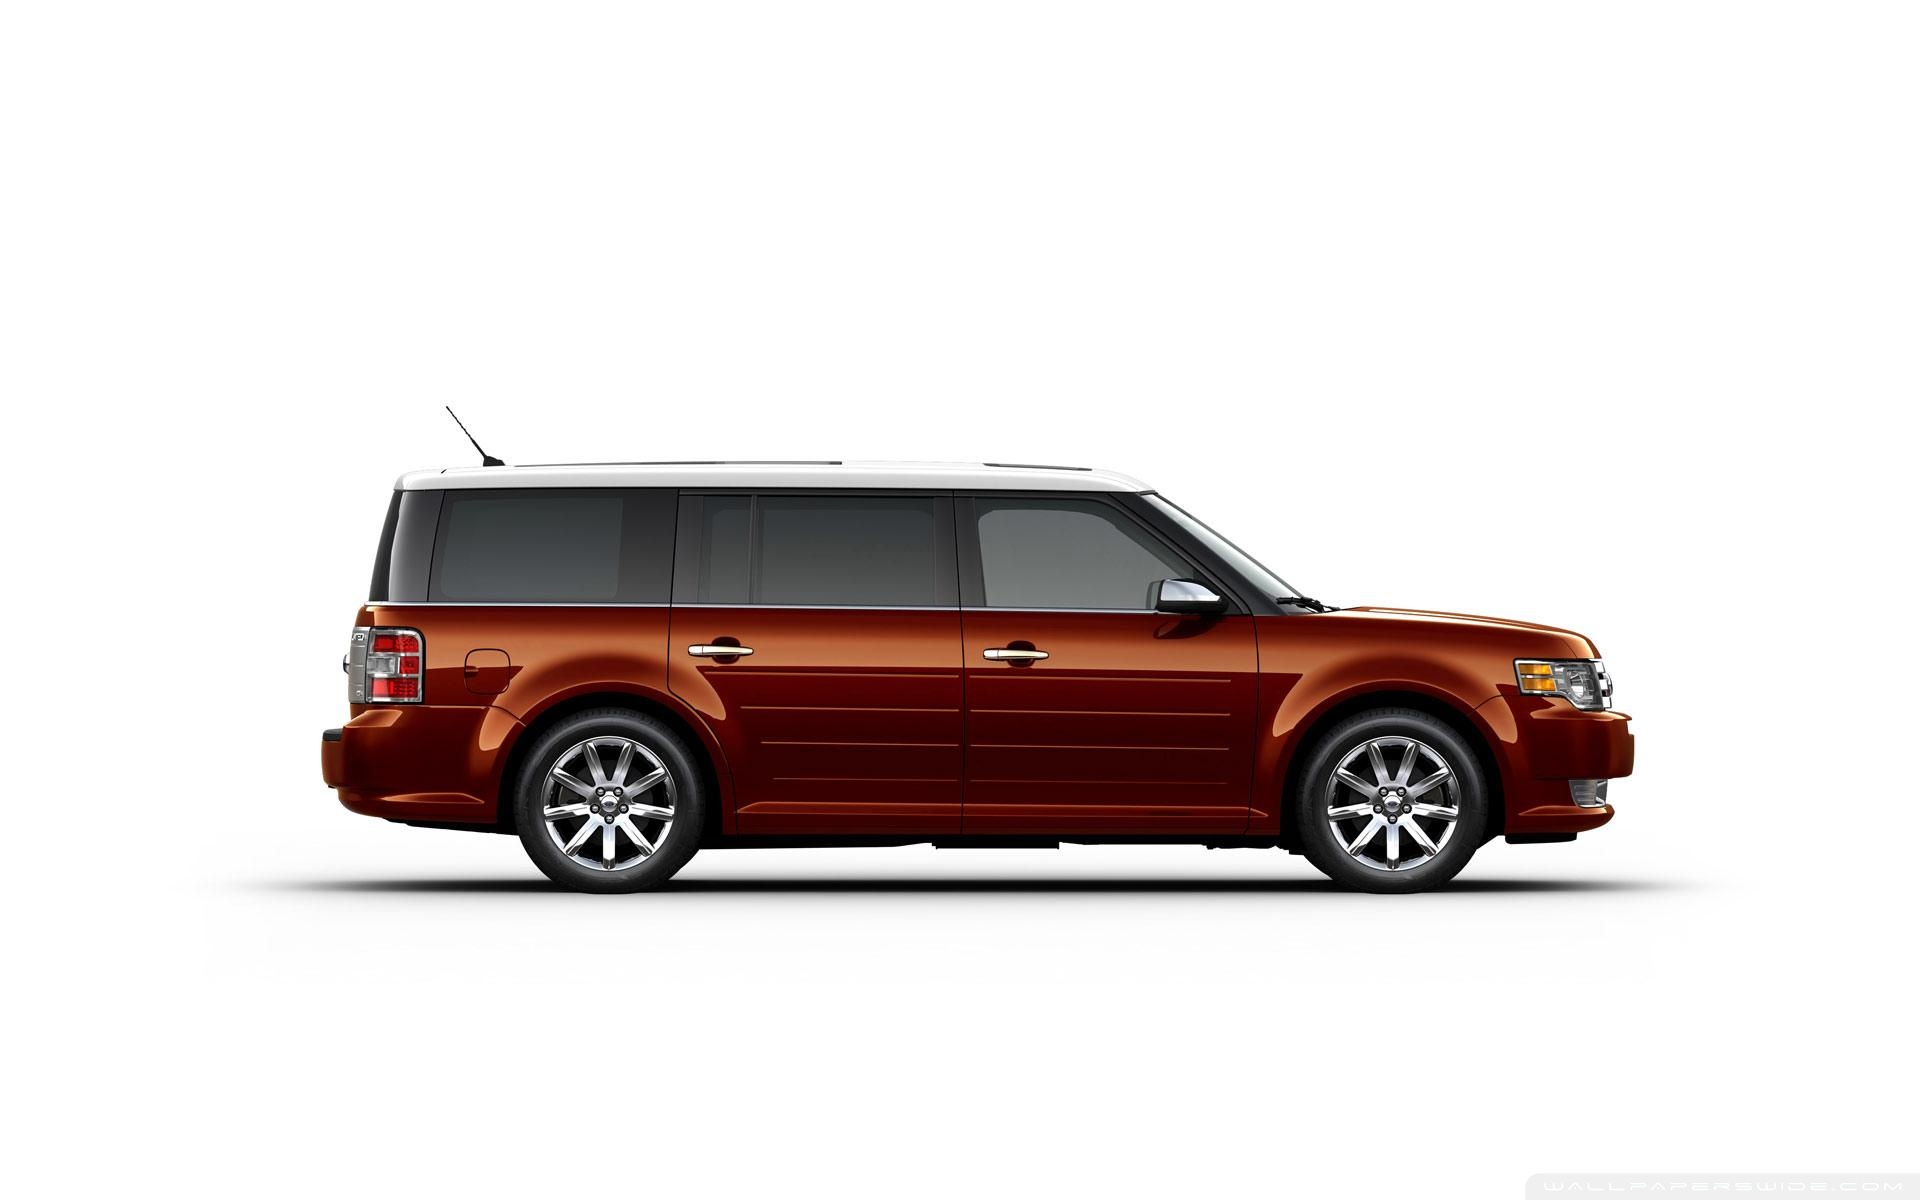 Download Free WallpaperFord Flex Limited Car